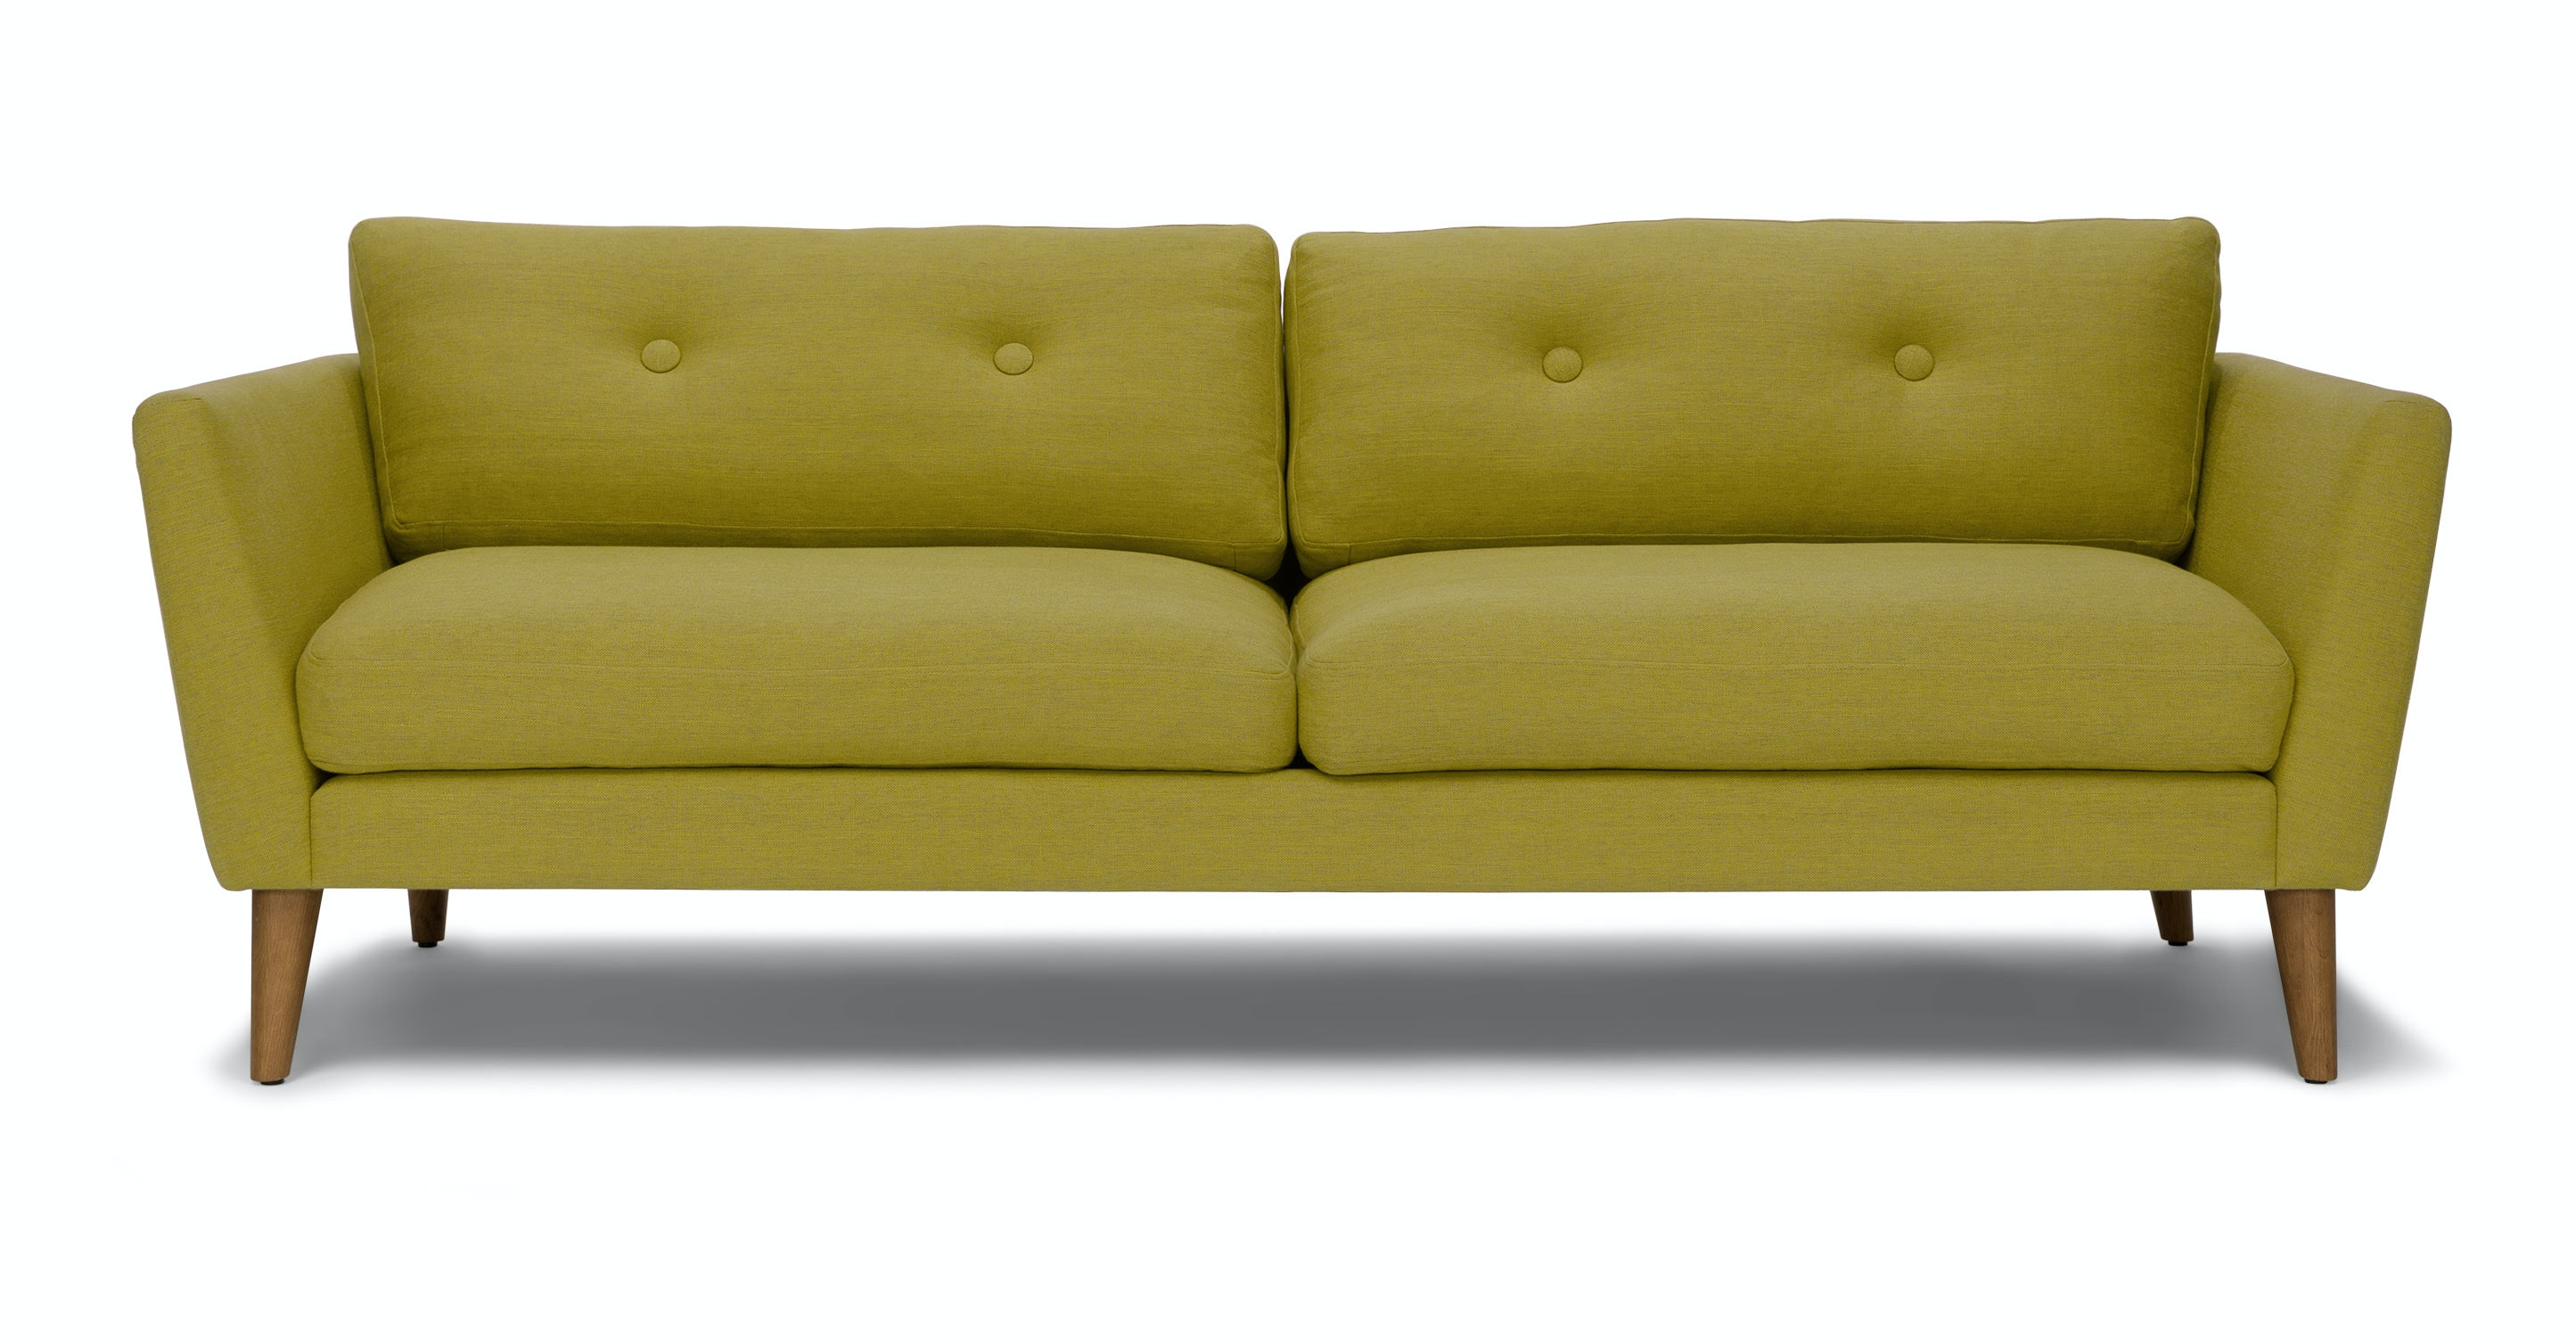 Yellow Sofa Bed Best 25 Yellow Leather Sofas Ideas On Pinterest Masculine Thesofa